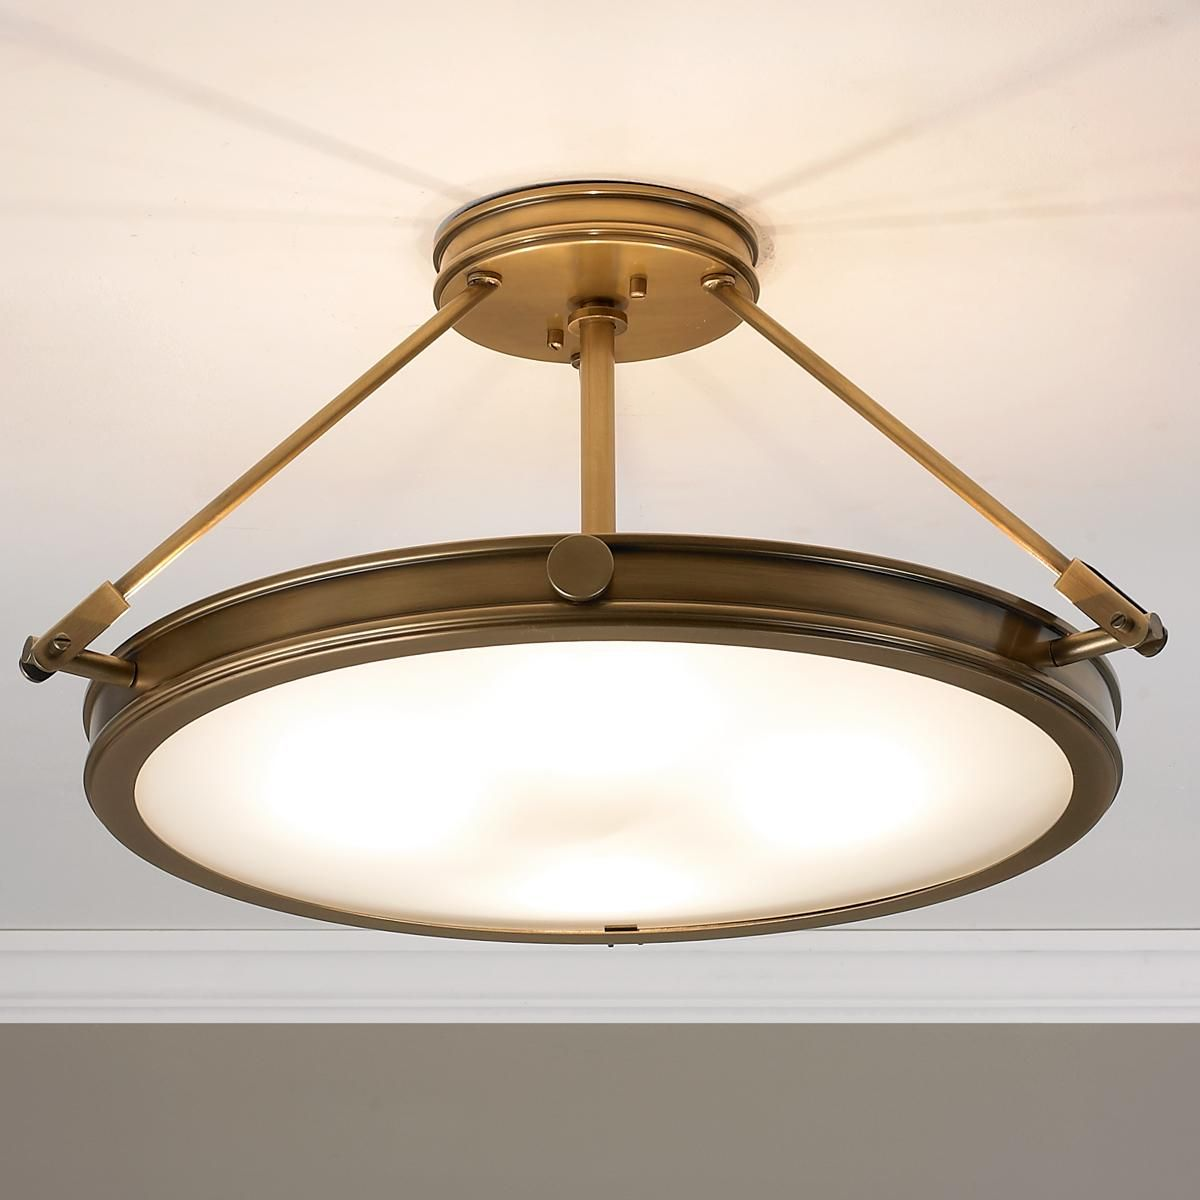 Mid Century Vintage Lights For Sale: Mid-Century Retro Ceiling Light - 4 Light